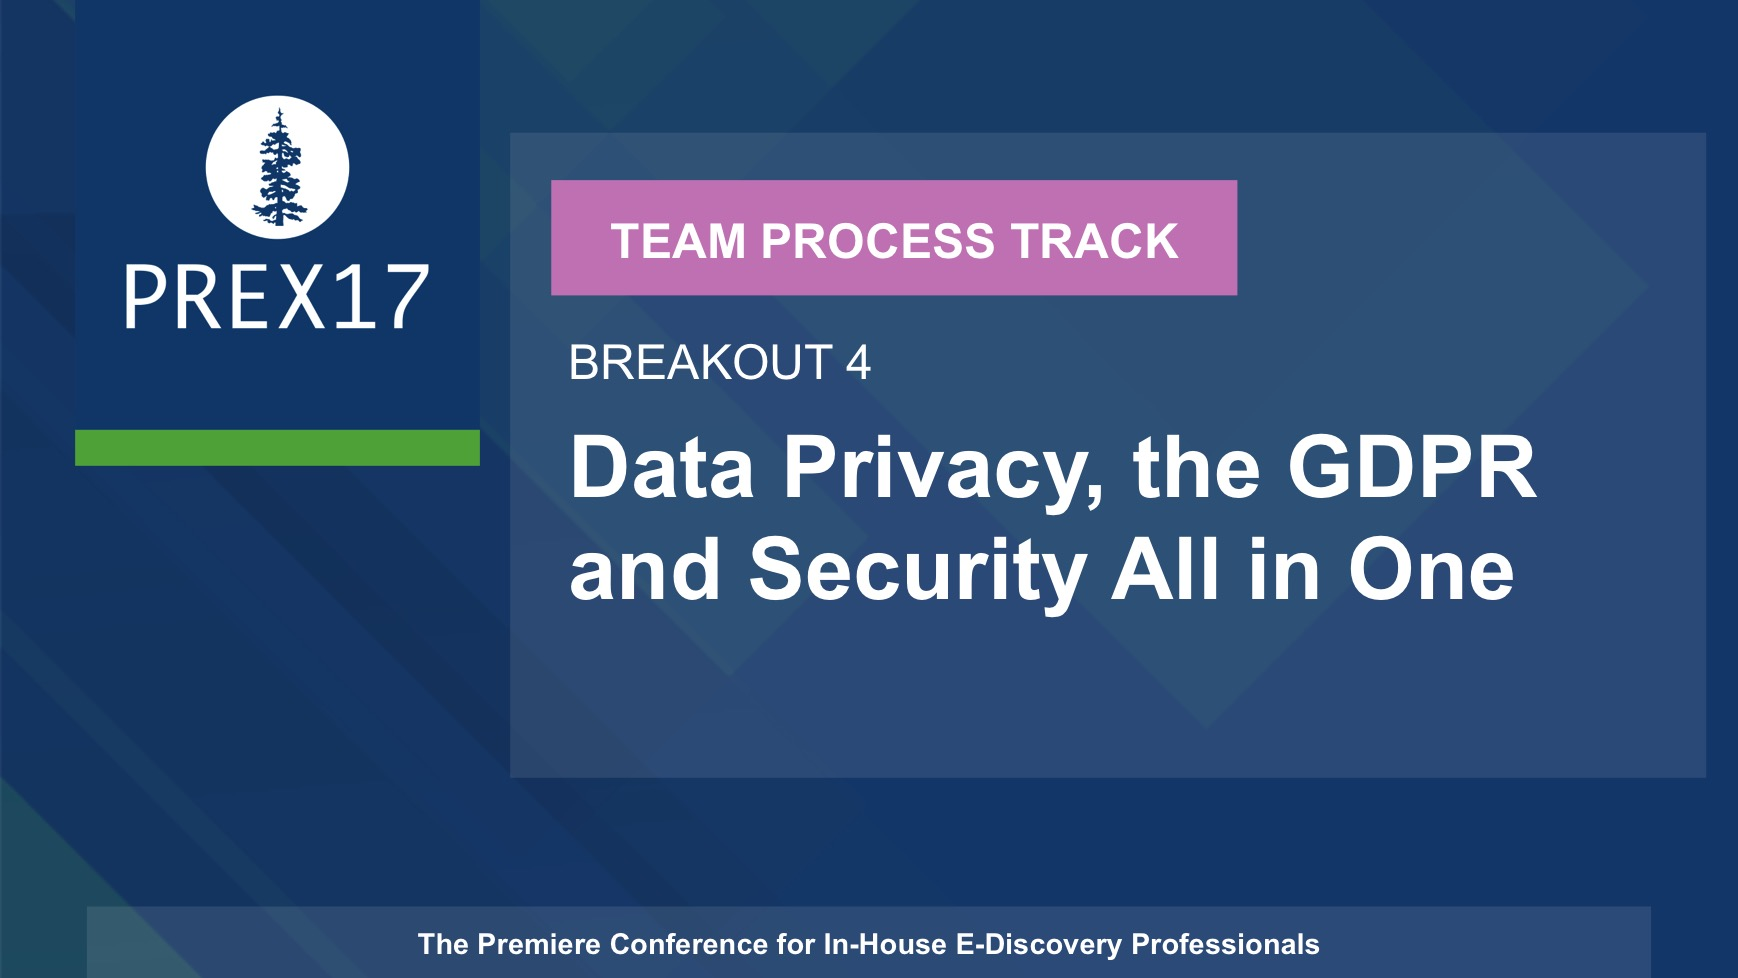 (Breakout 4 - Team Process) Data Privacy, the GDPR and Security All in One